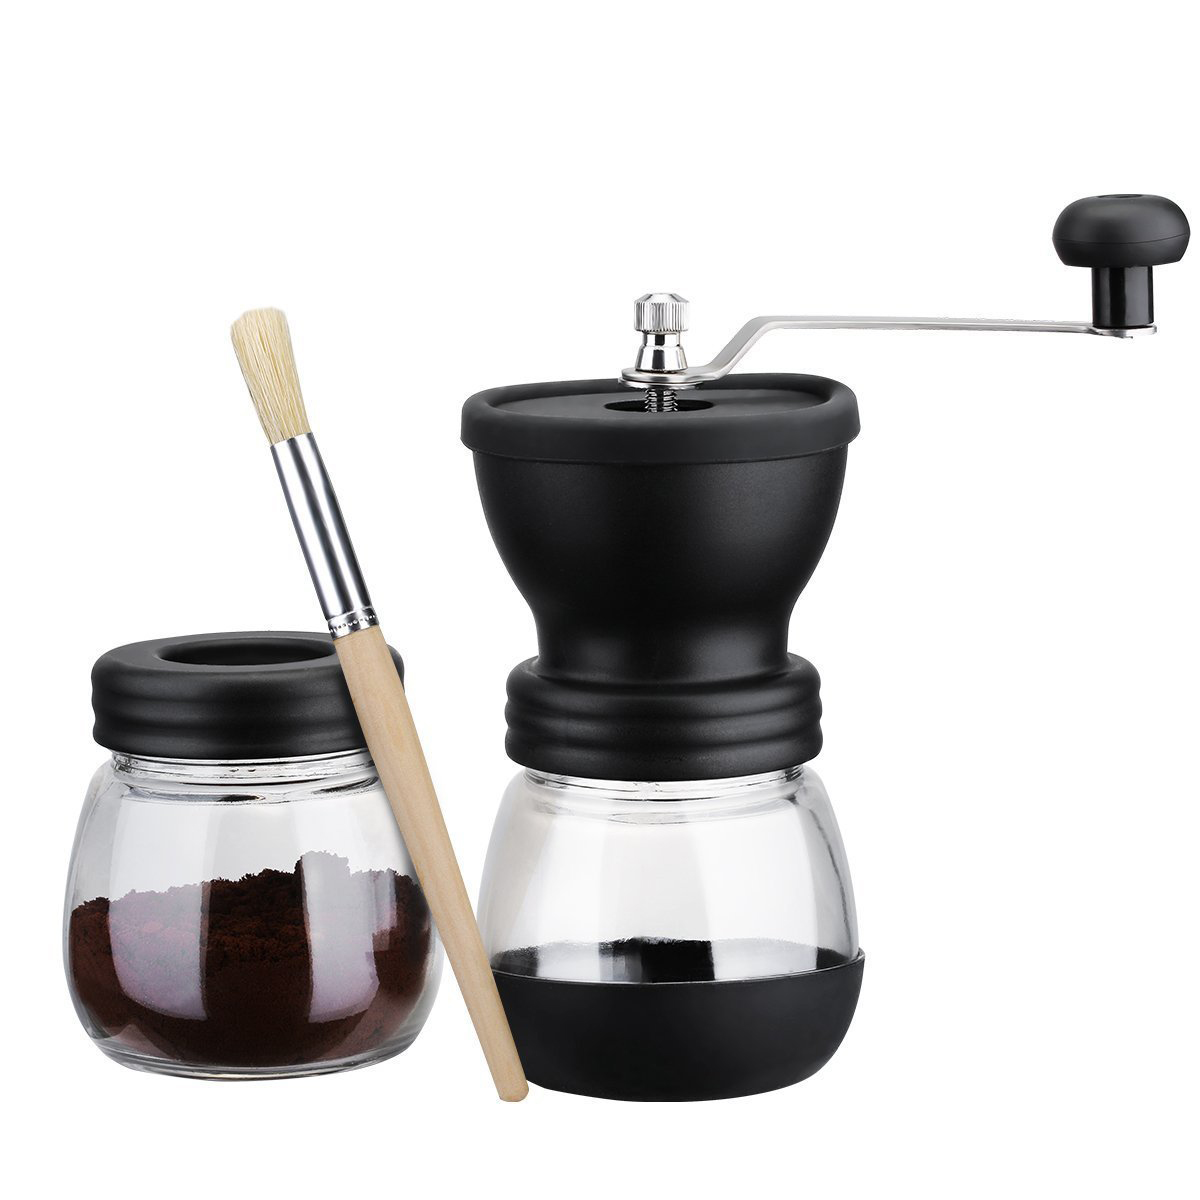 HOT Manual Coffee Grinder with Storage Jar Soft brush  Conical Ceramic Burr Quiet and PortableHOT Manual Coffee Grinder with Storage Jar Soft brush  Conical Ceramic Burr Quiet and Portable